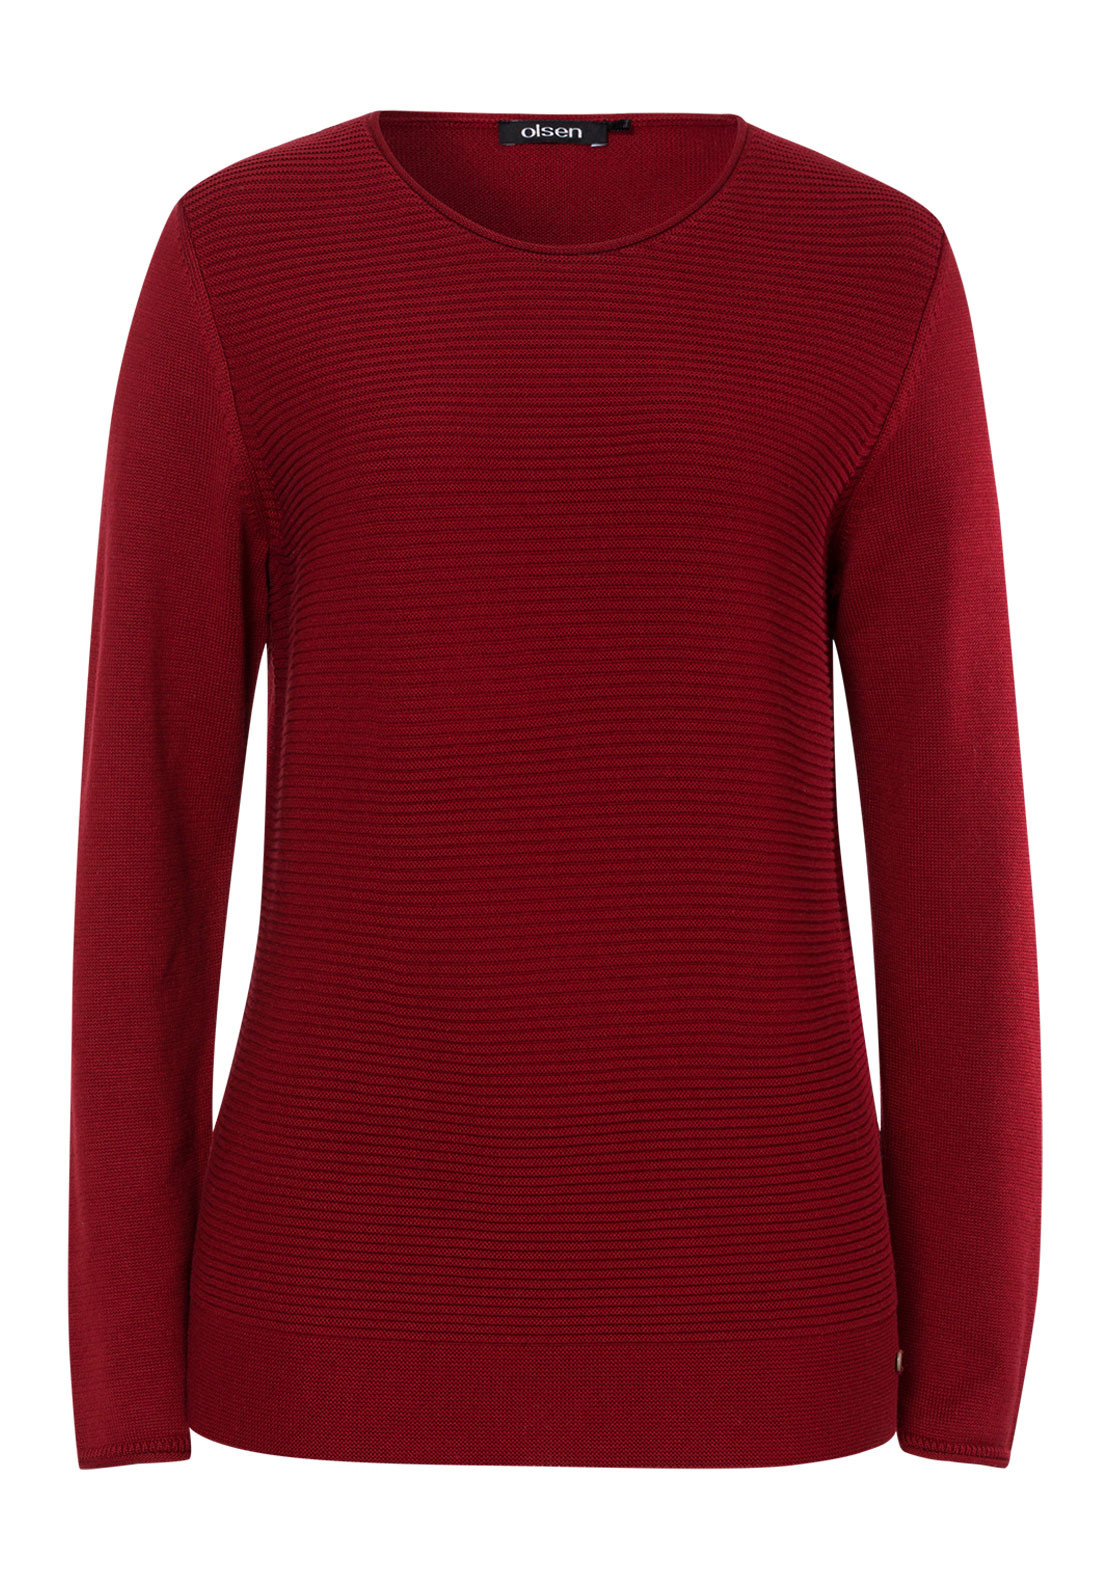 Olsen Ribbed Cotton Blend Jumper, Red